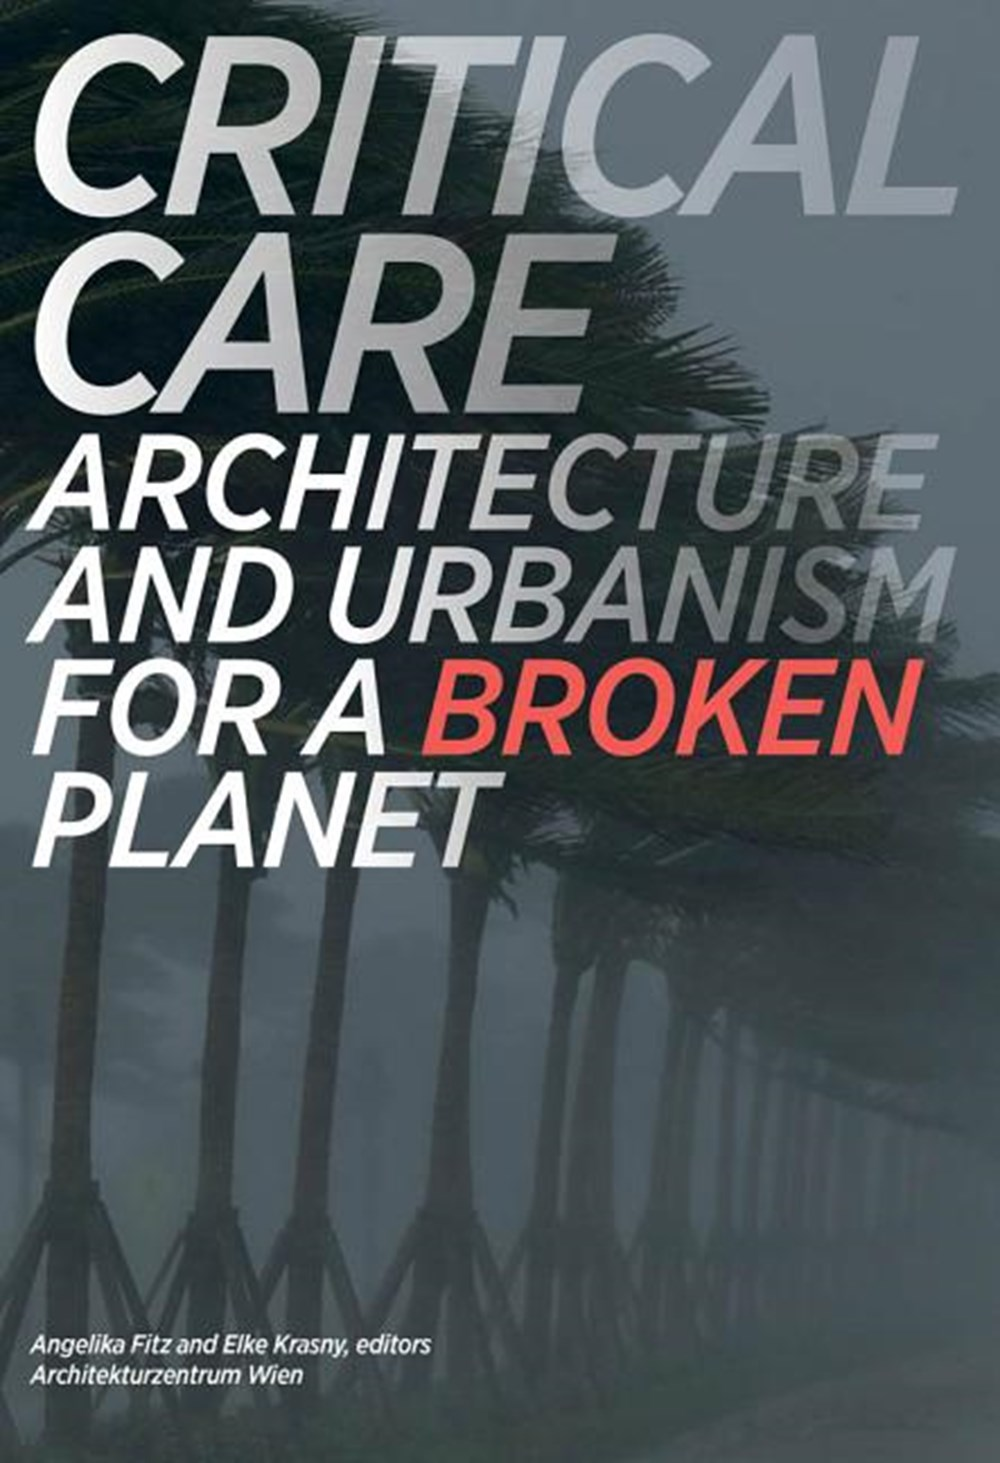 Critical Care Architecture and Urbanism for a Broken Planet